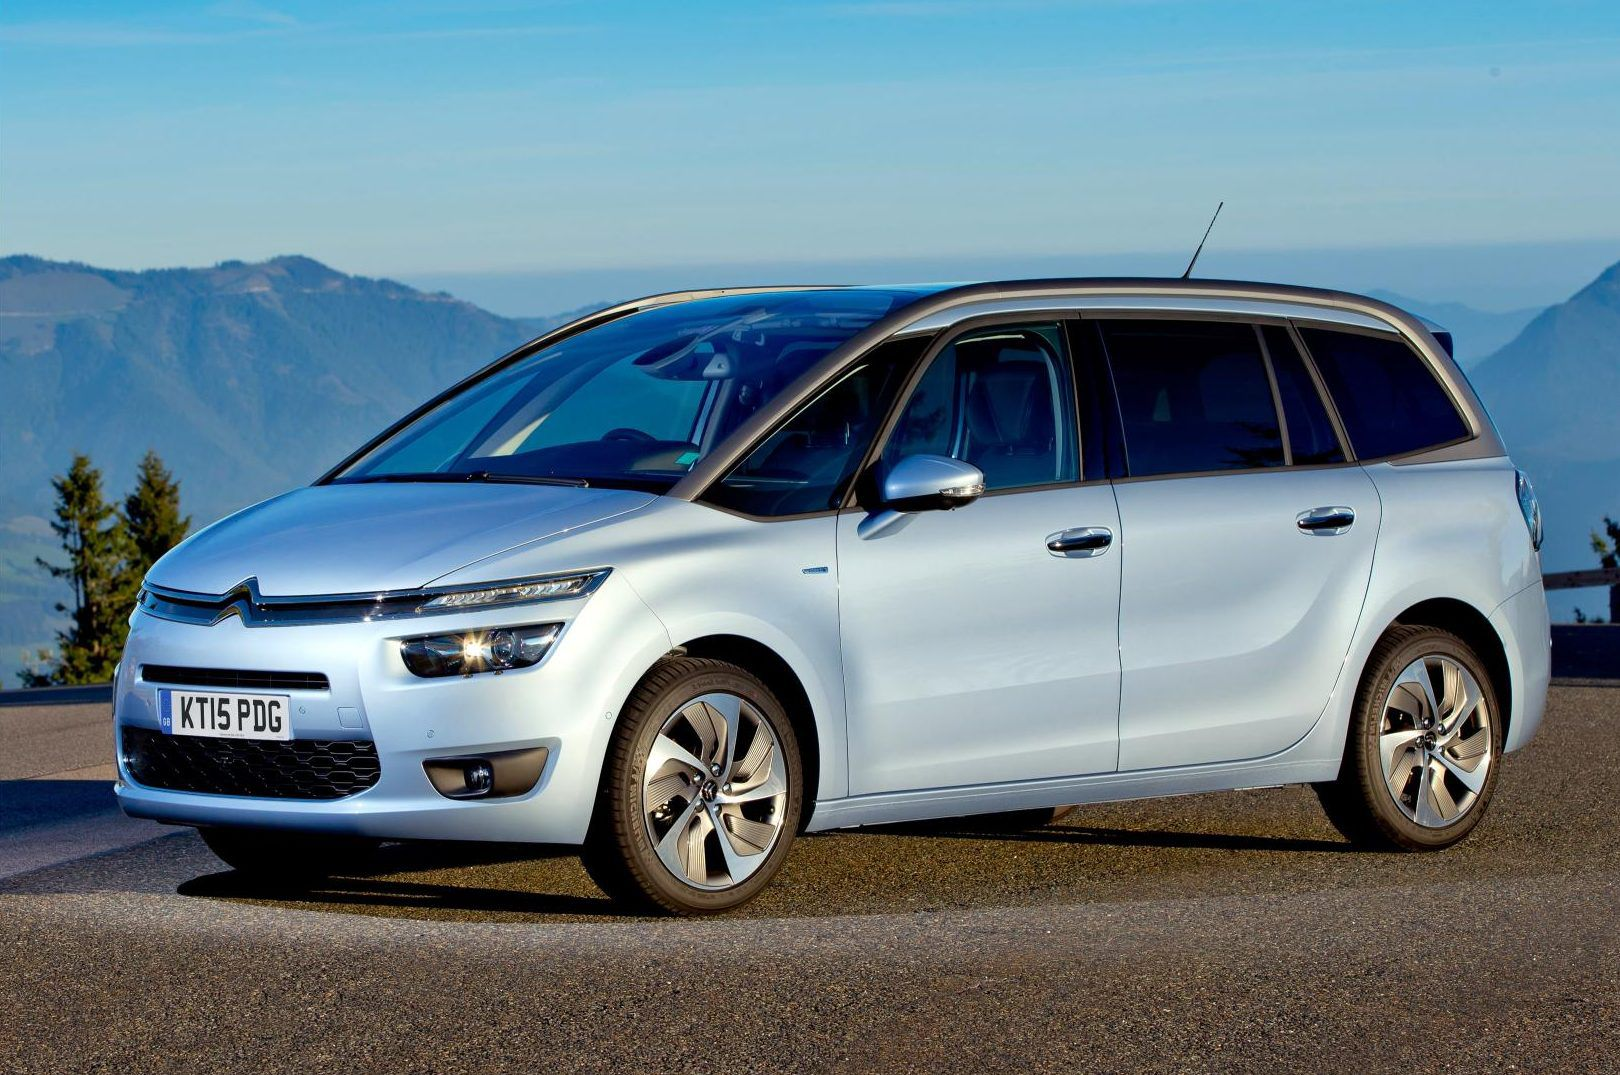 Silver medium sized MPV Citroen C4 Picasso